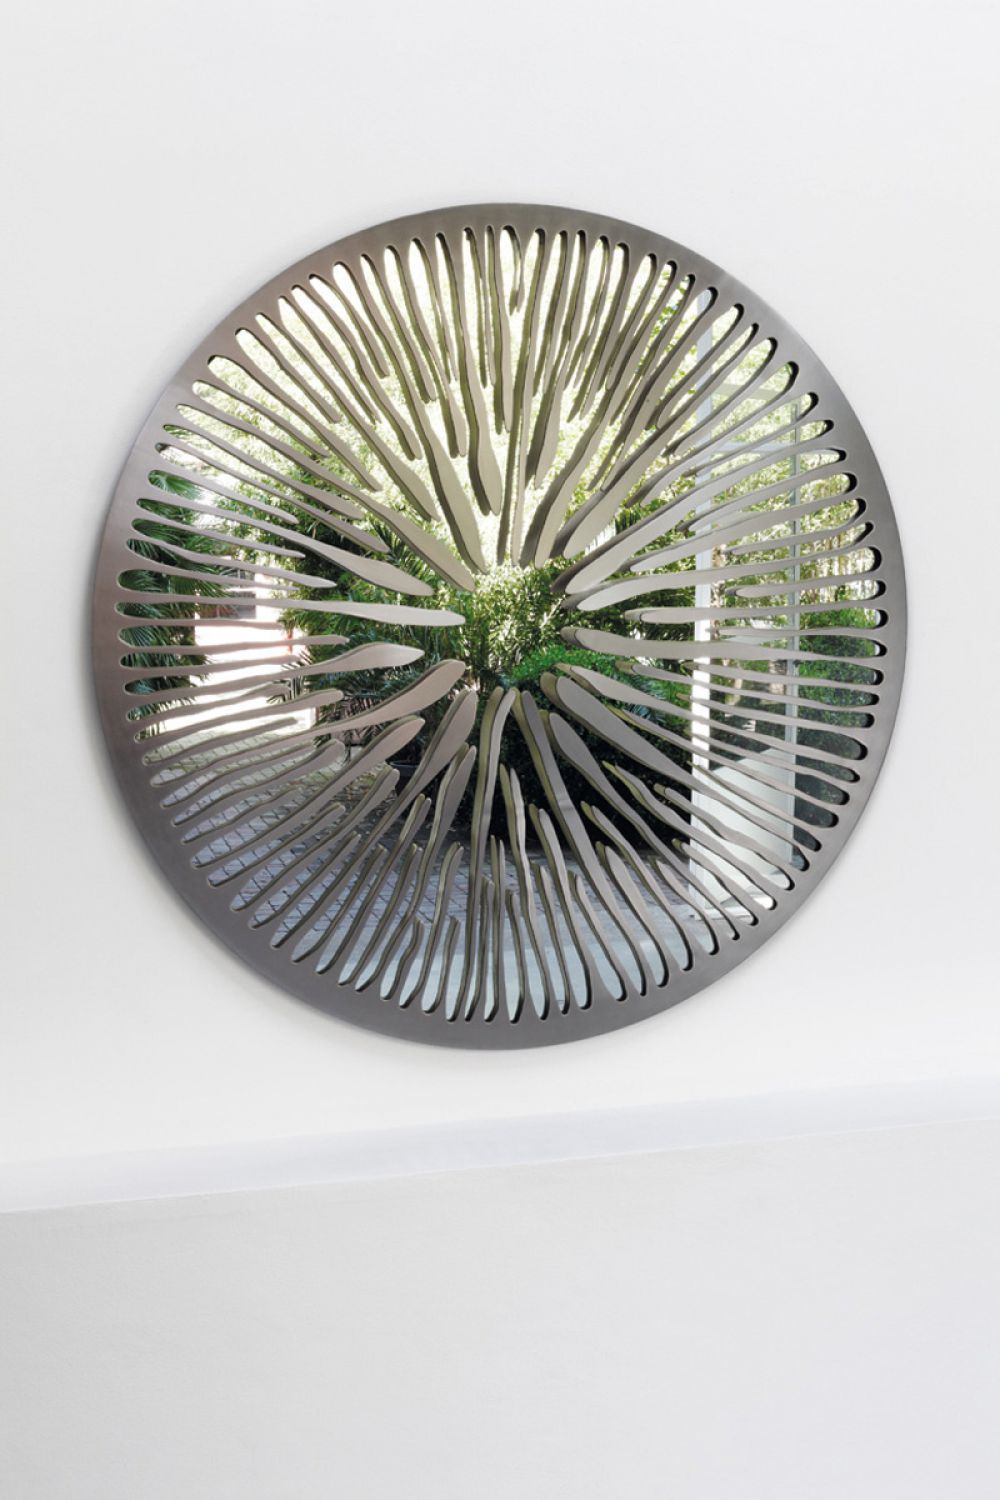 PUPIL I - Sculptural mirror : Stainless Steel